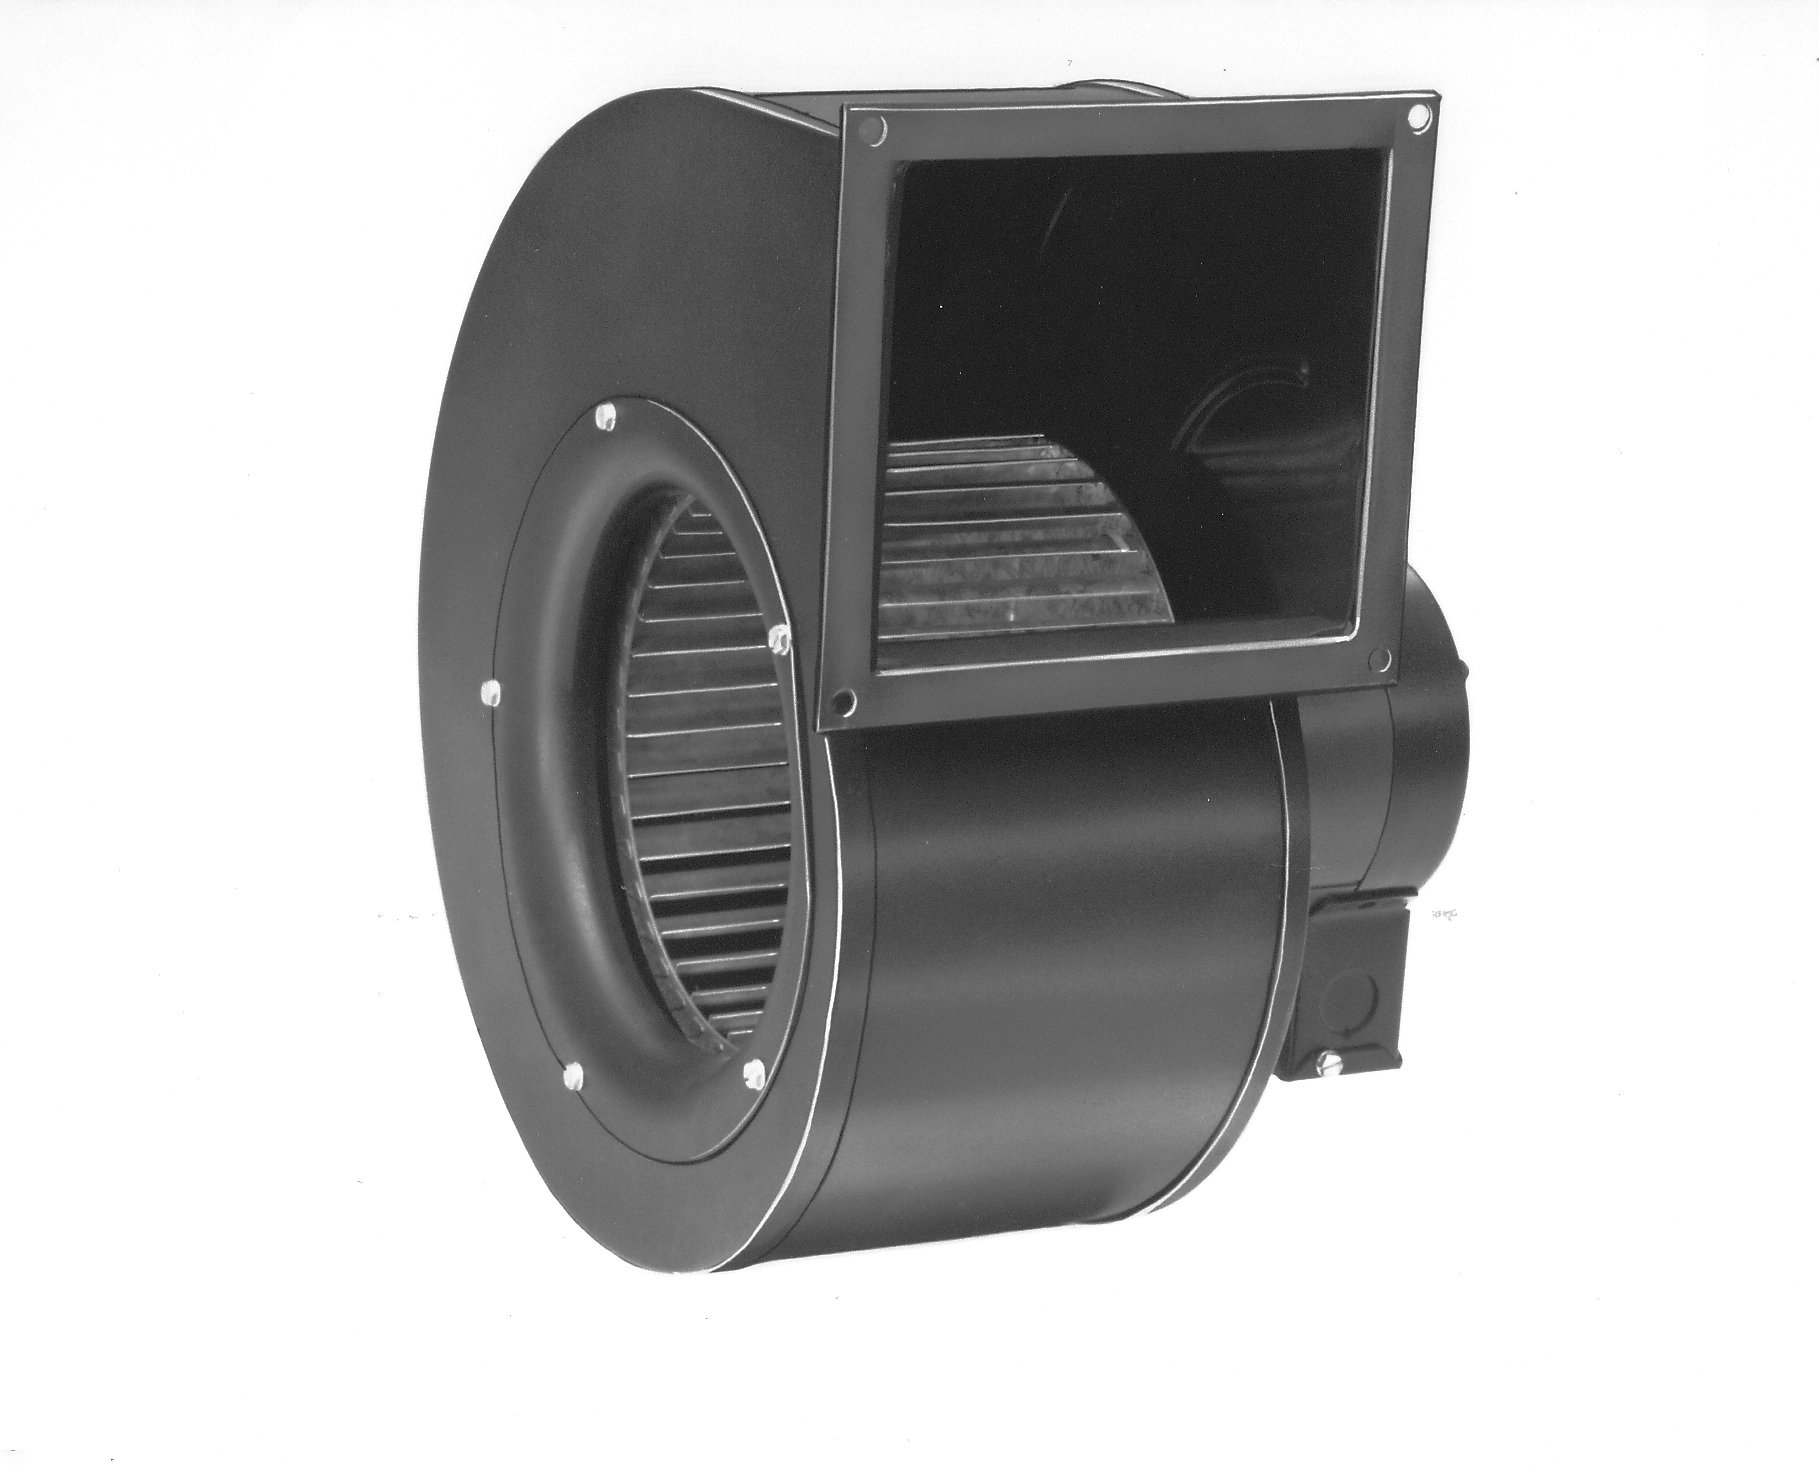 Fasco B68042 Centrifugal Blower with Sleeve Bearing, 1,100 rpm, 115V, 60Hz, 5.6 amps